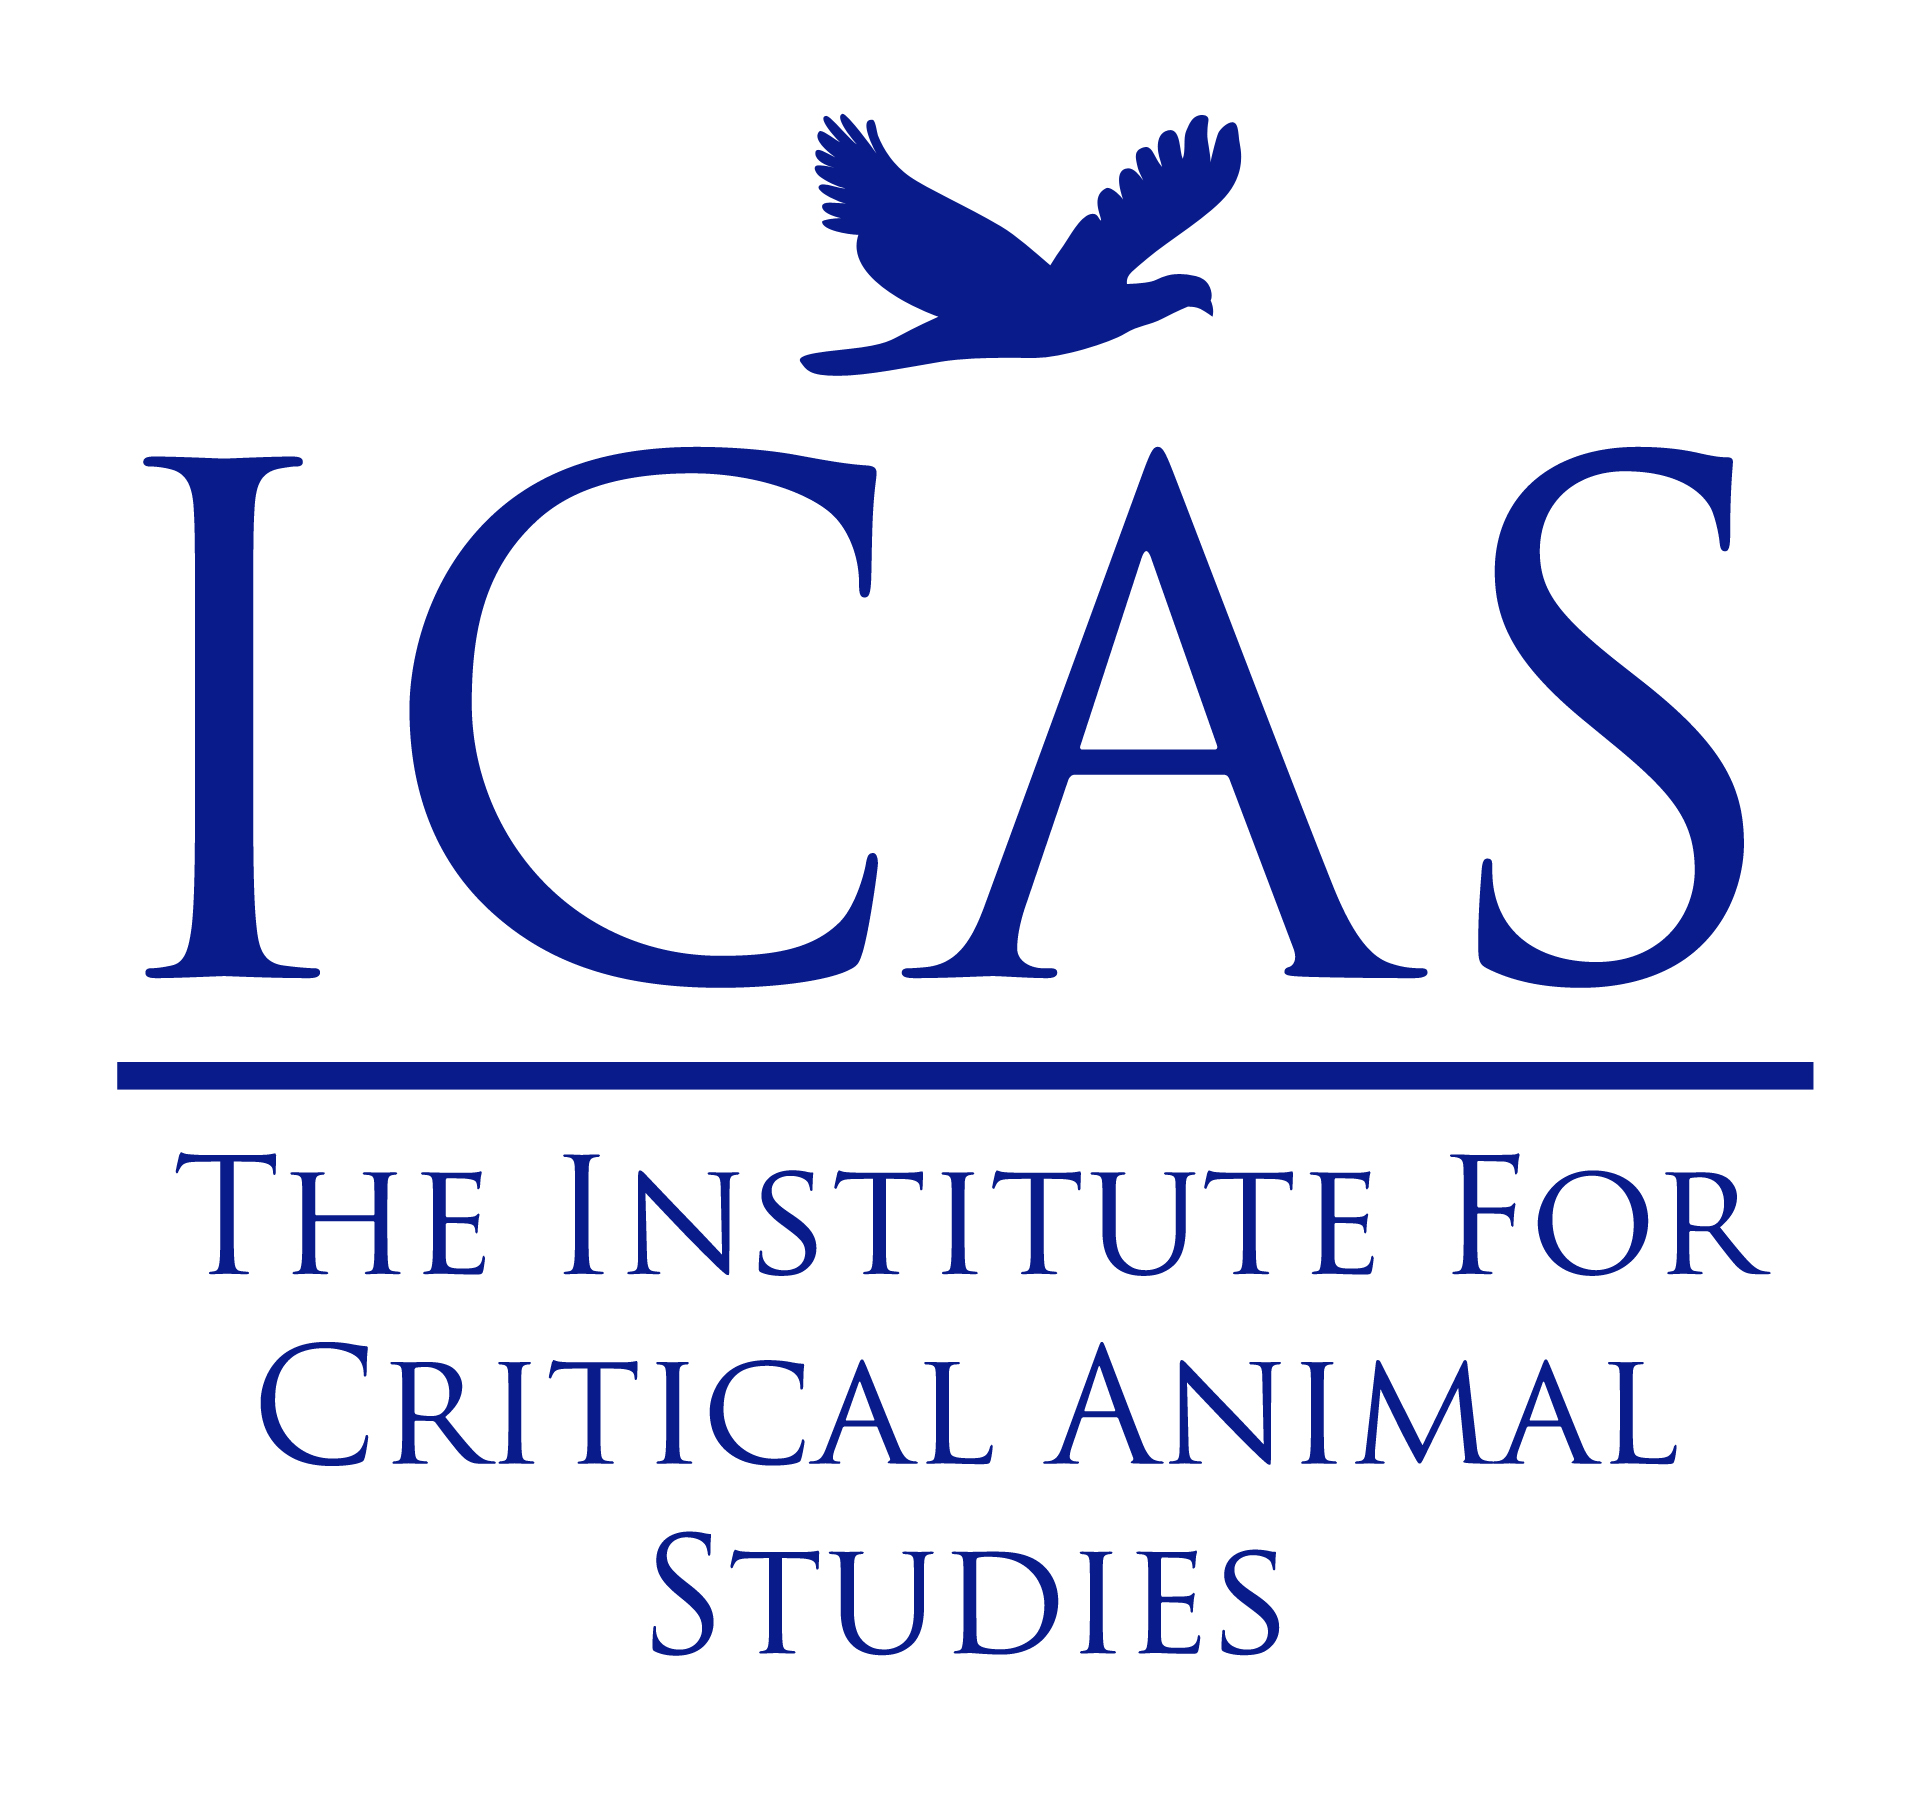 JCAS VOLUME 12, ISSUE 3, AUGUST 2014